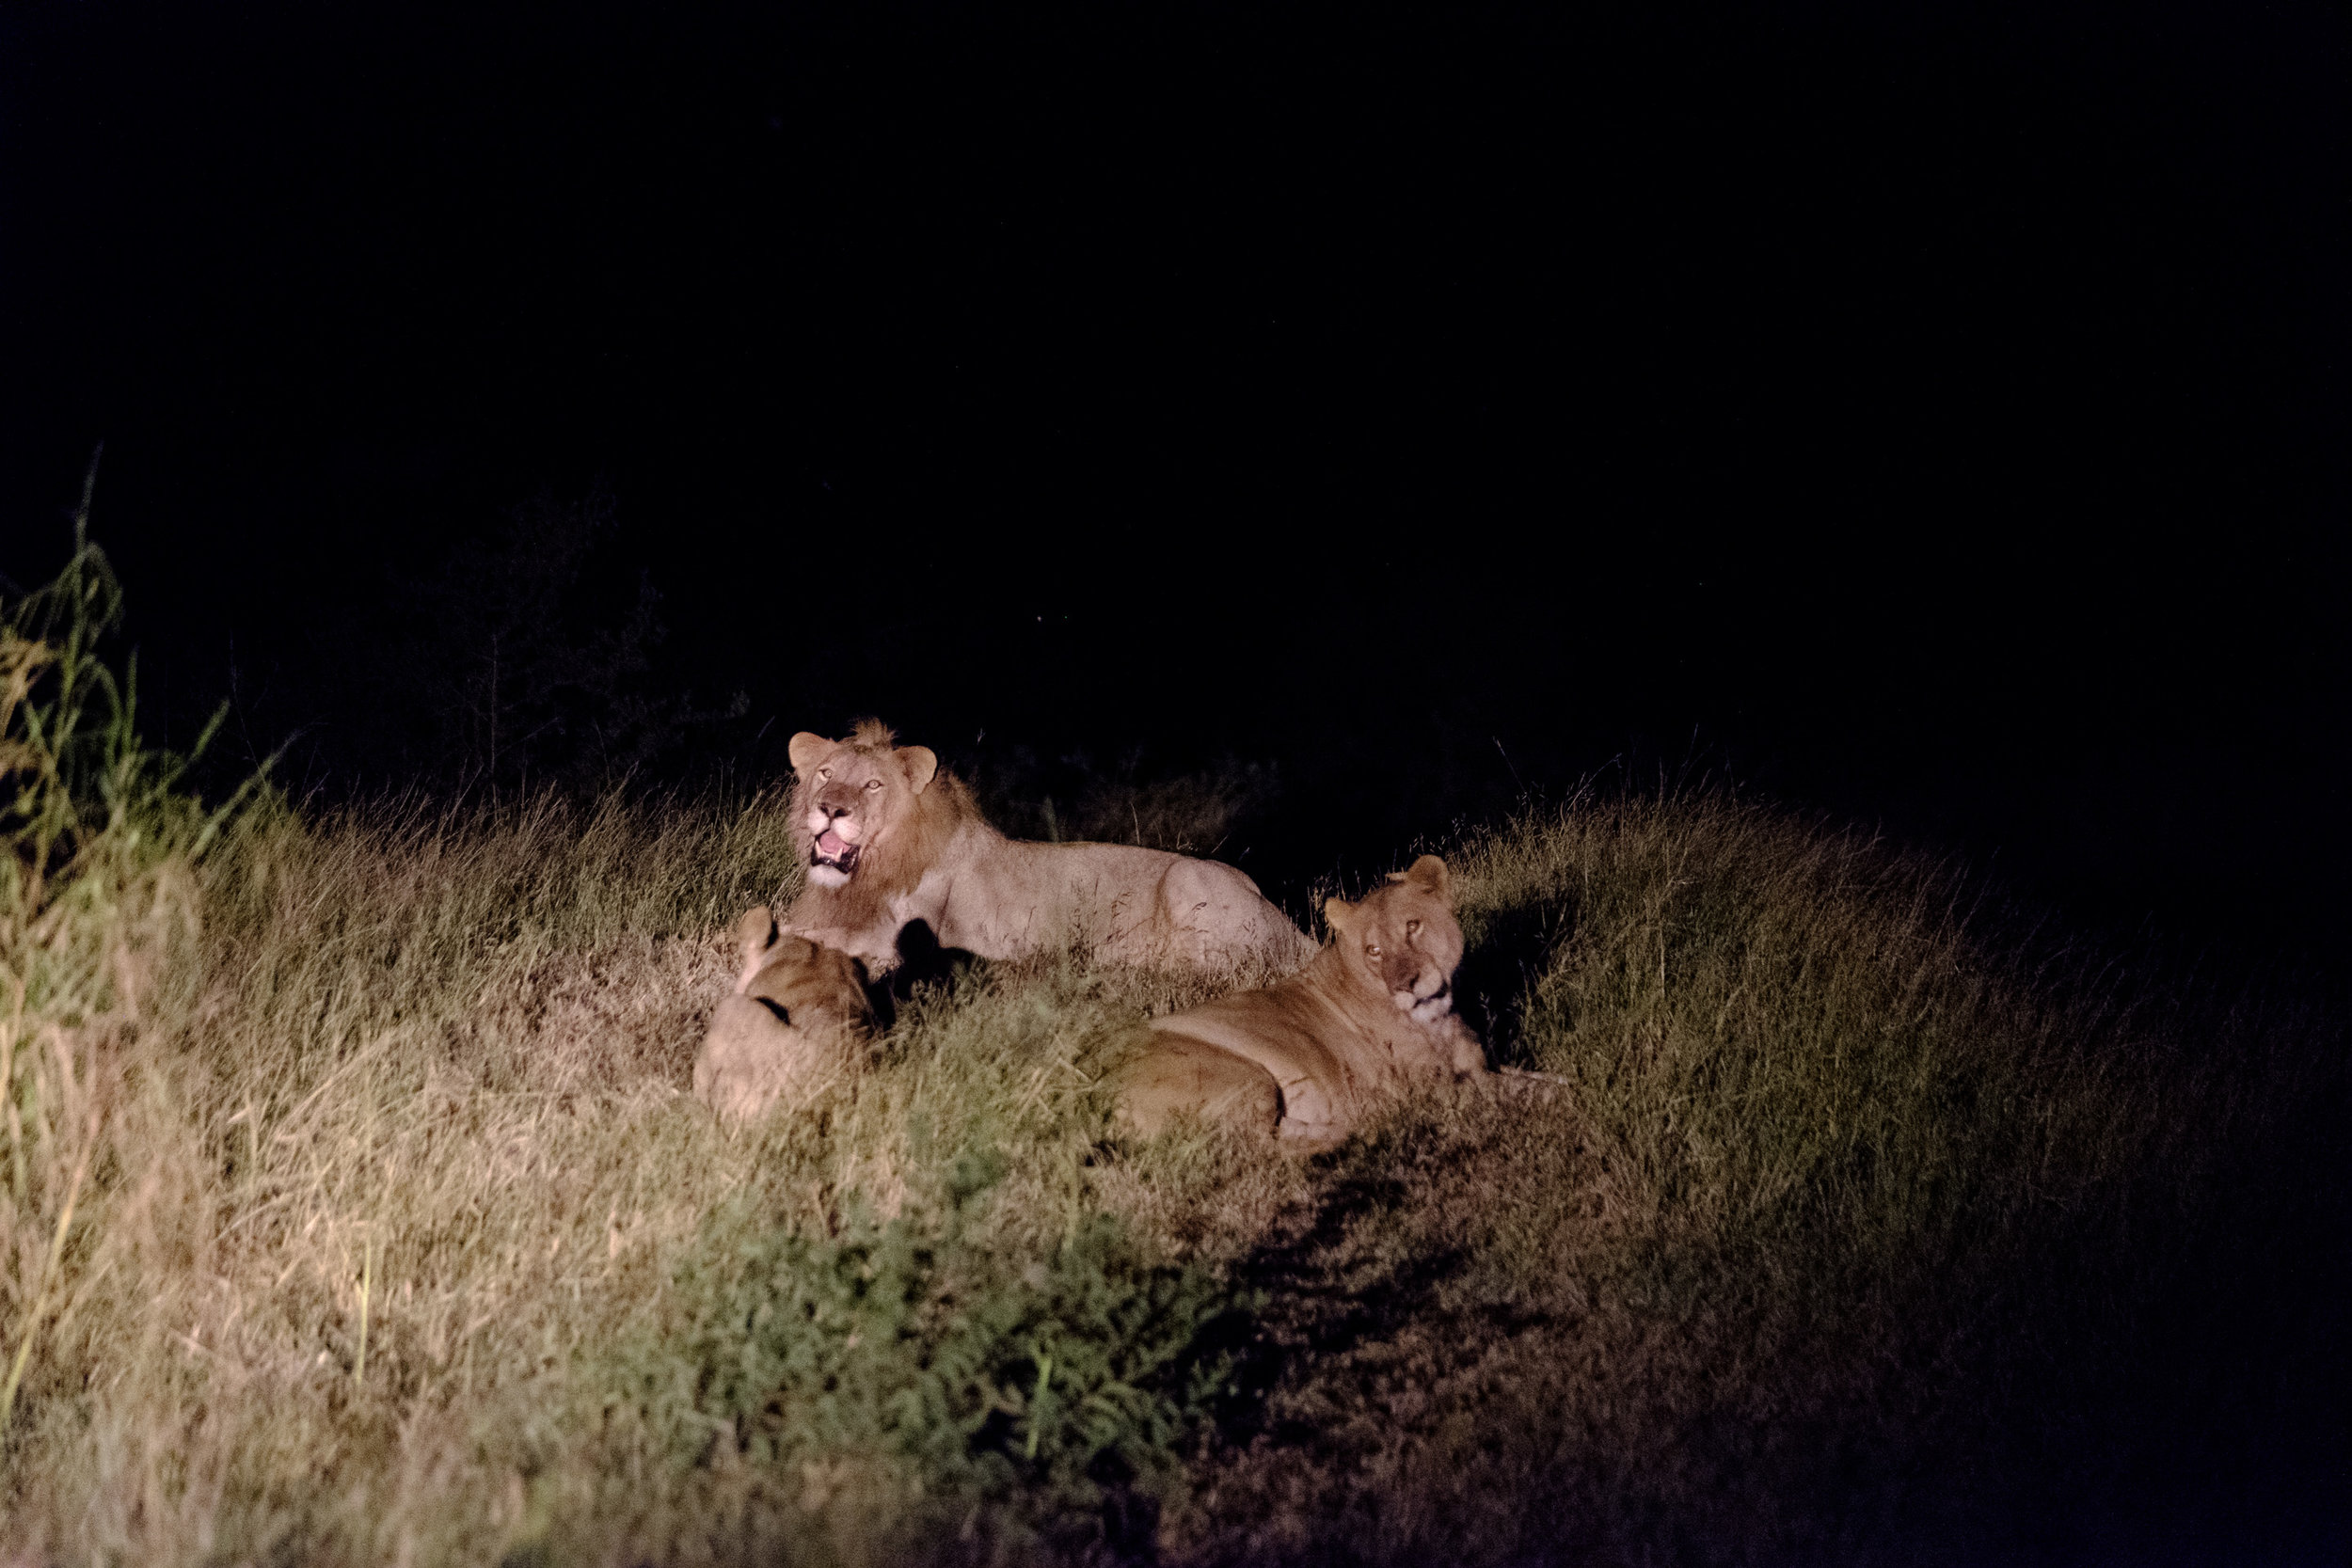 Night game drive, this was taken with a spotlight on the truck - XF 50-140mm, 1/20s, F2.8, ISO 12800